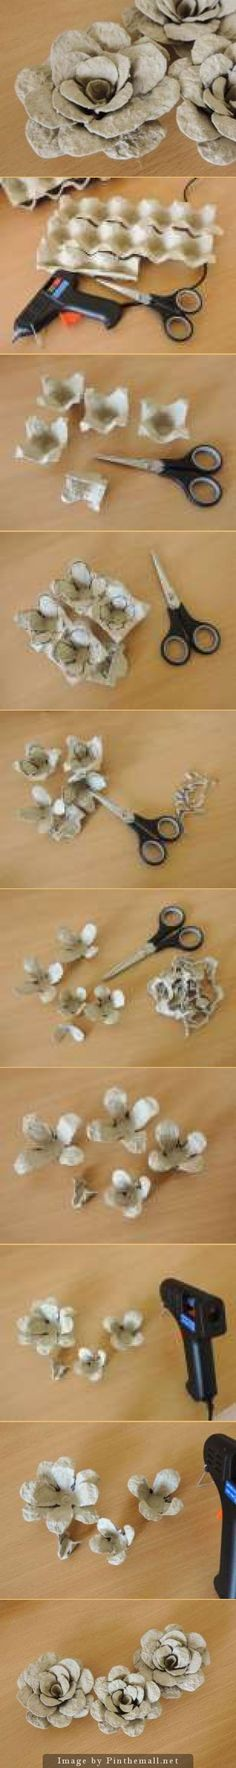 The whole detailed photo tutorial on how to make these egg carton flowers - Tutorial foto: trandafiri din cofraje de ouă | Atelierul Grădina cu fluturi